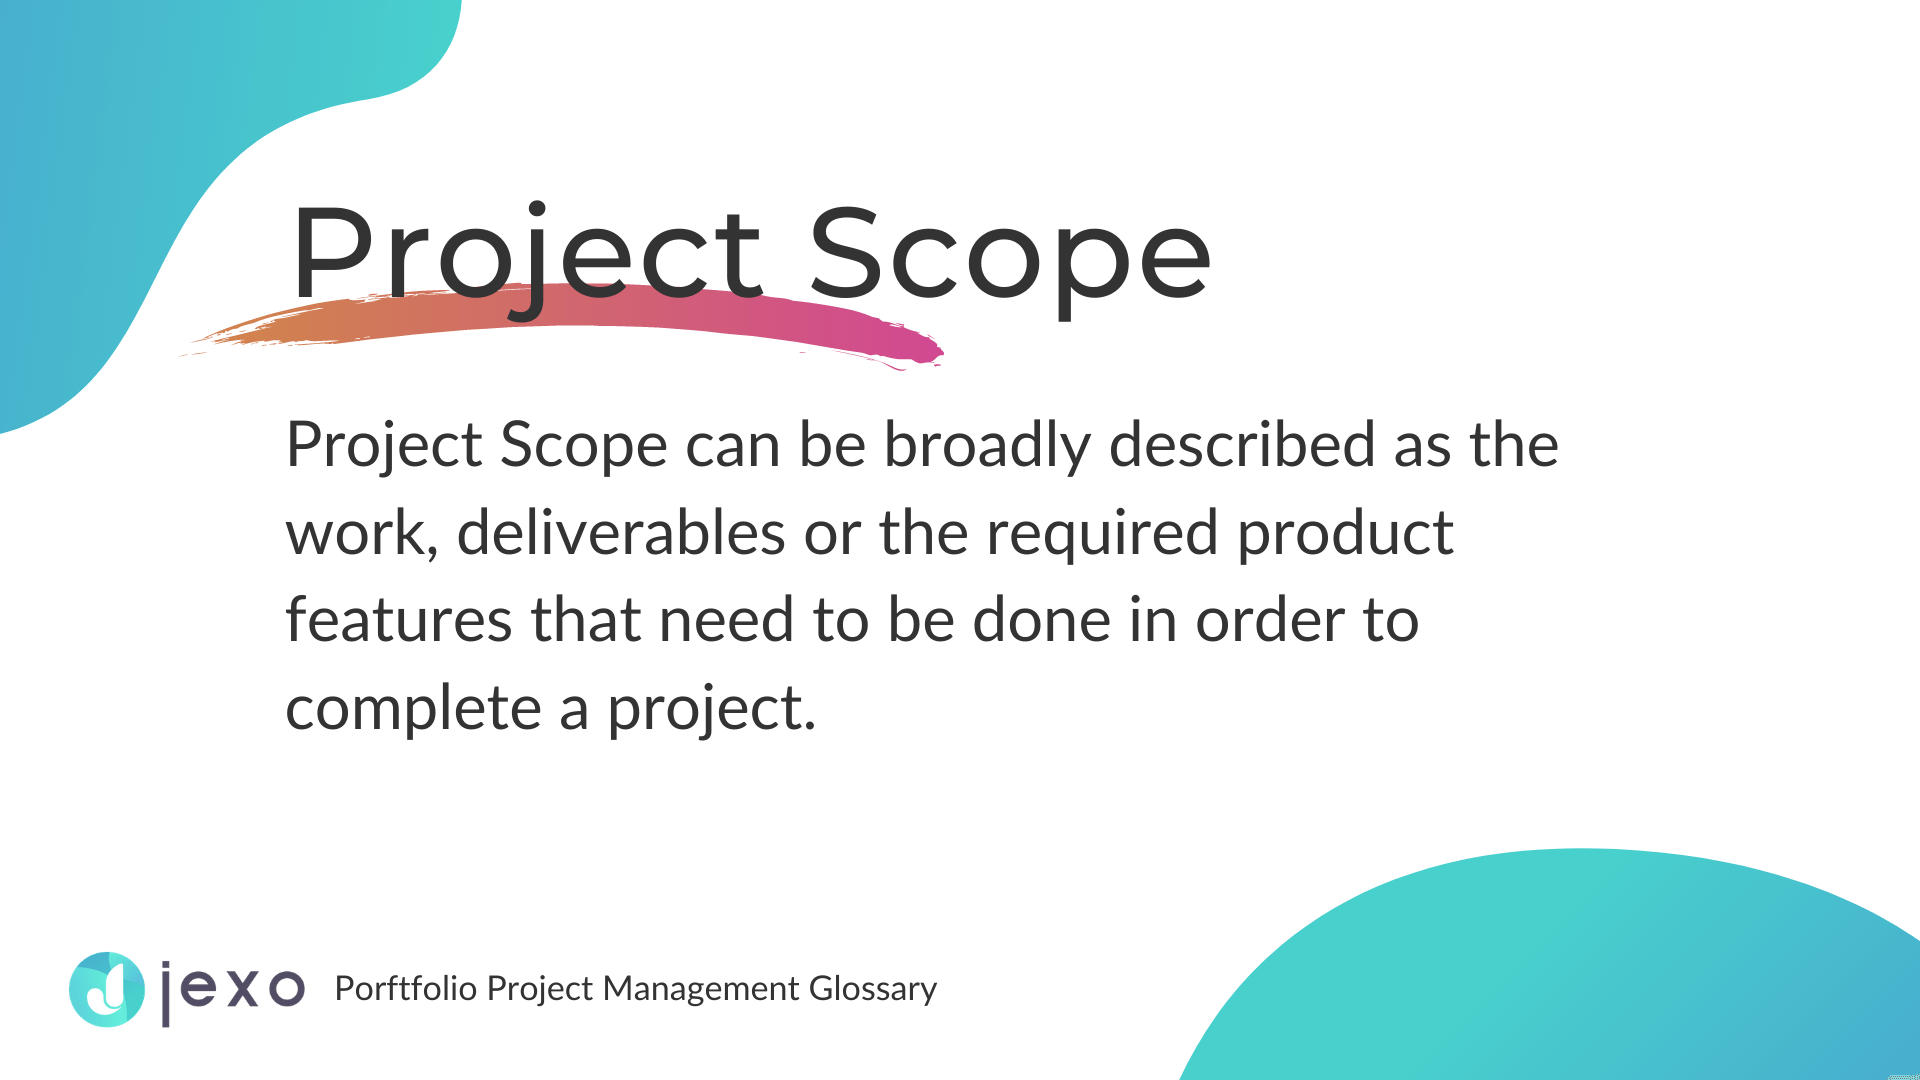 Definition: What is Project scope in Project management?